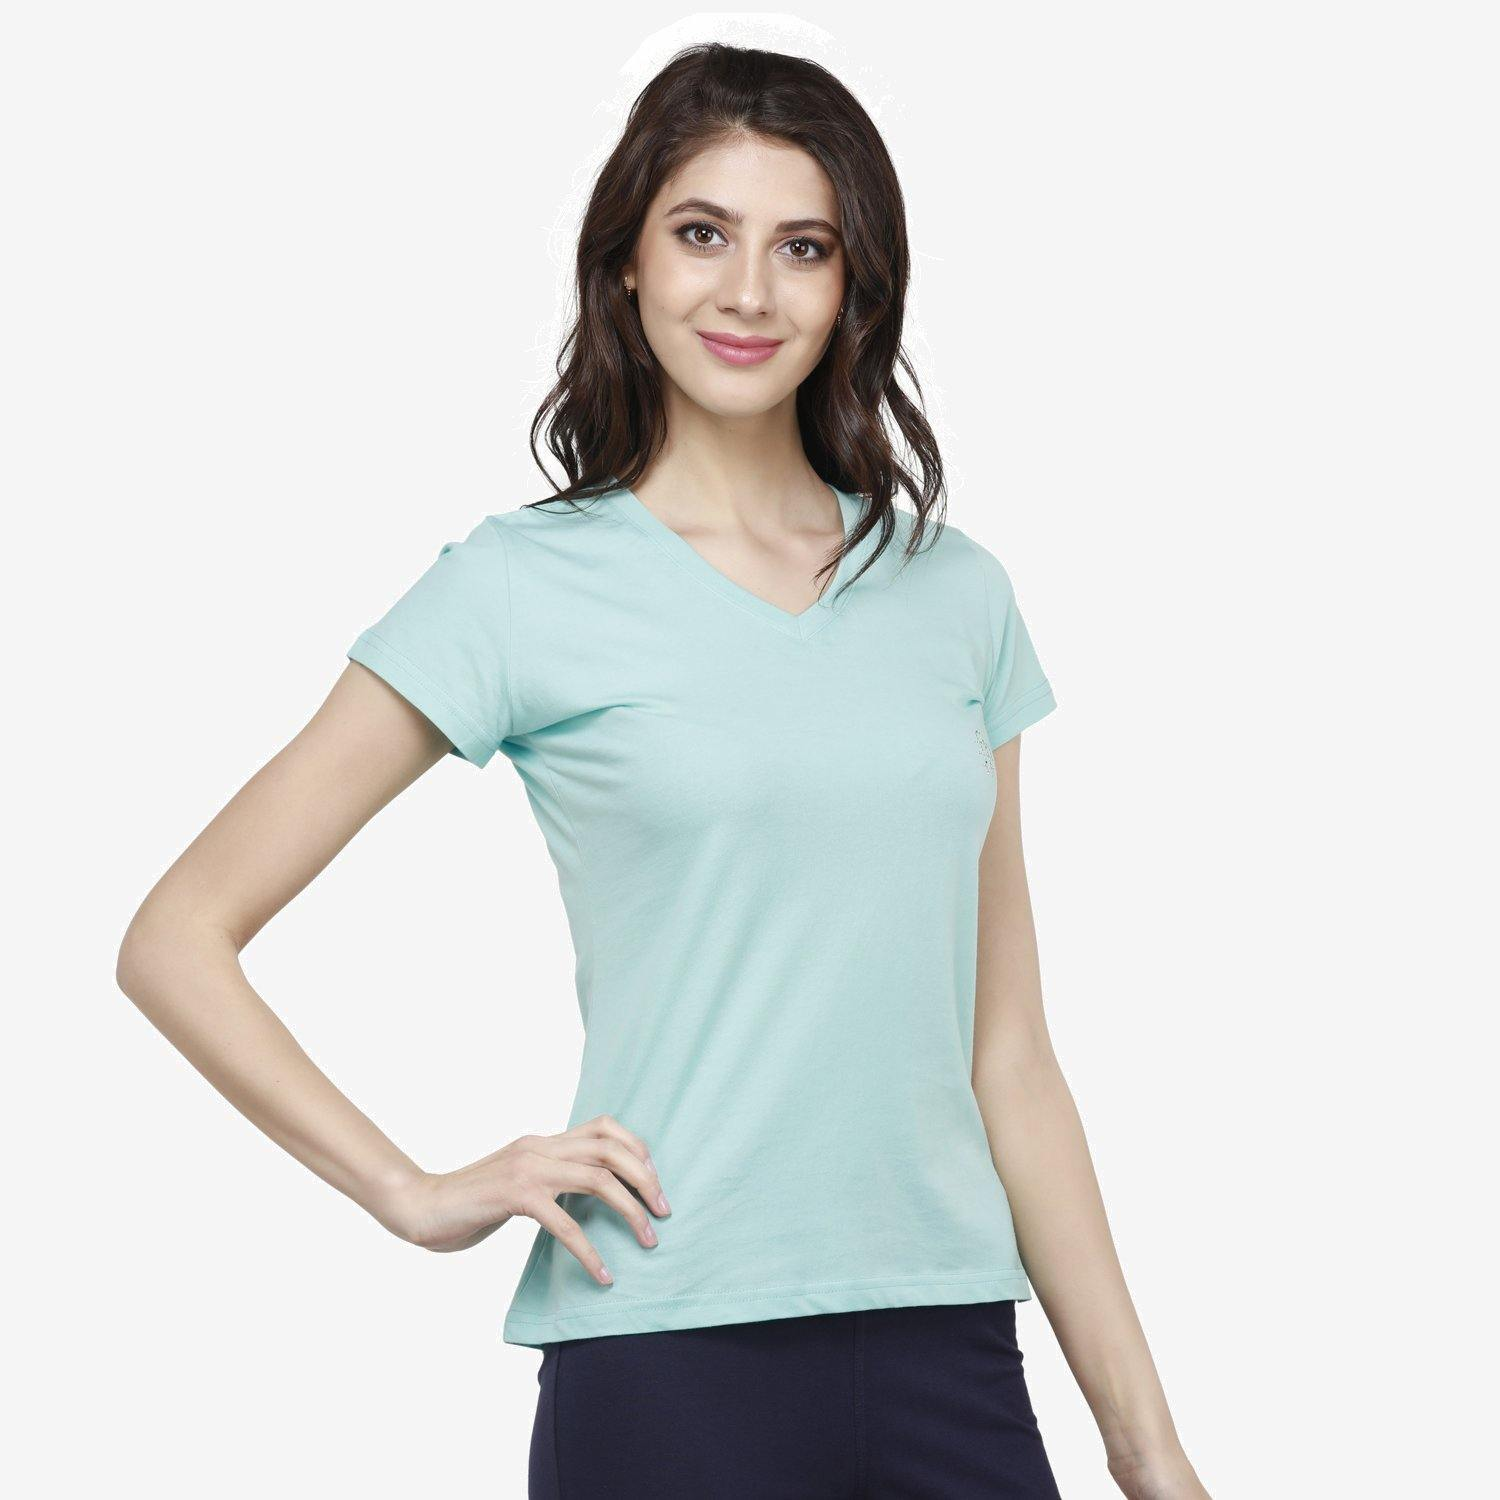 Women's Stylish V- Neck Casual Half Sleeve T-shirt